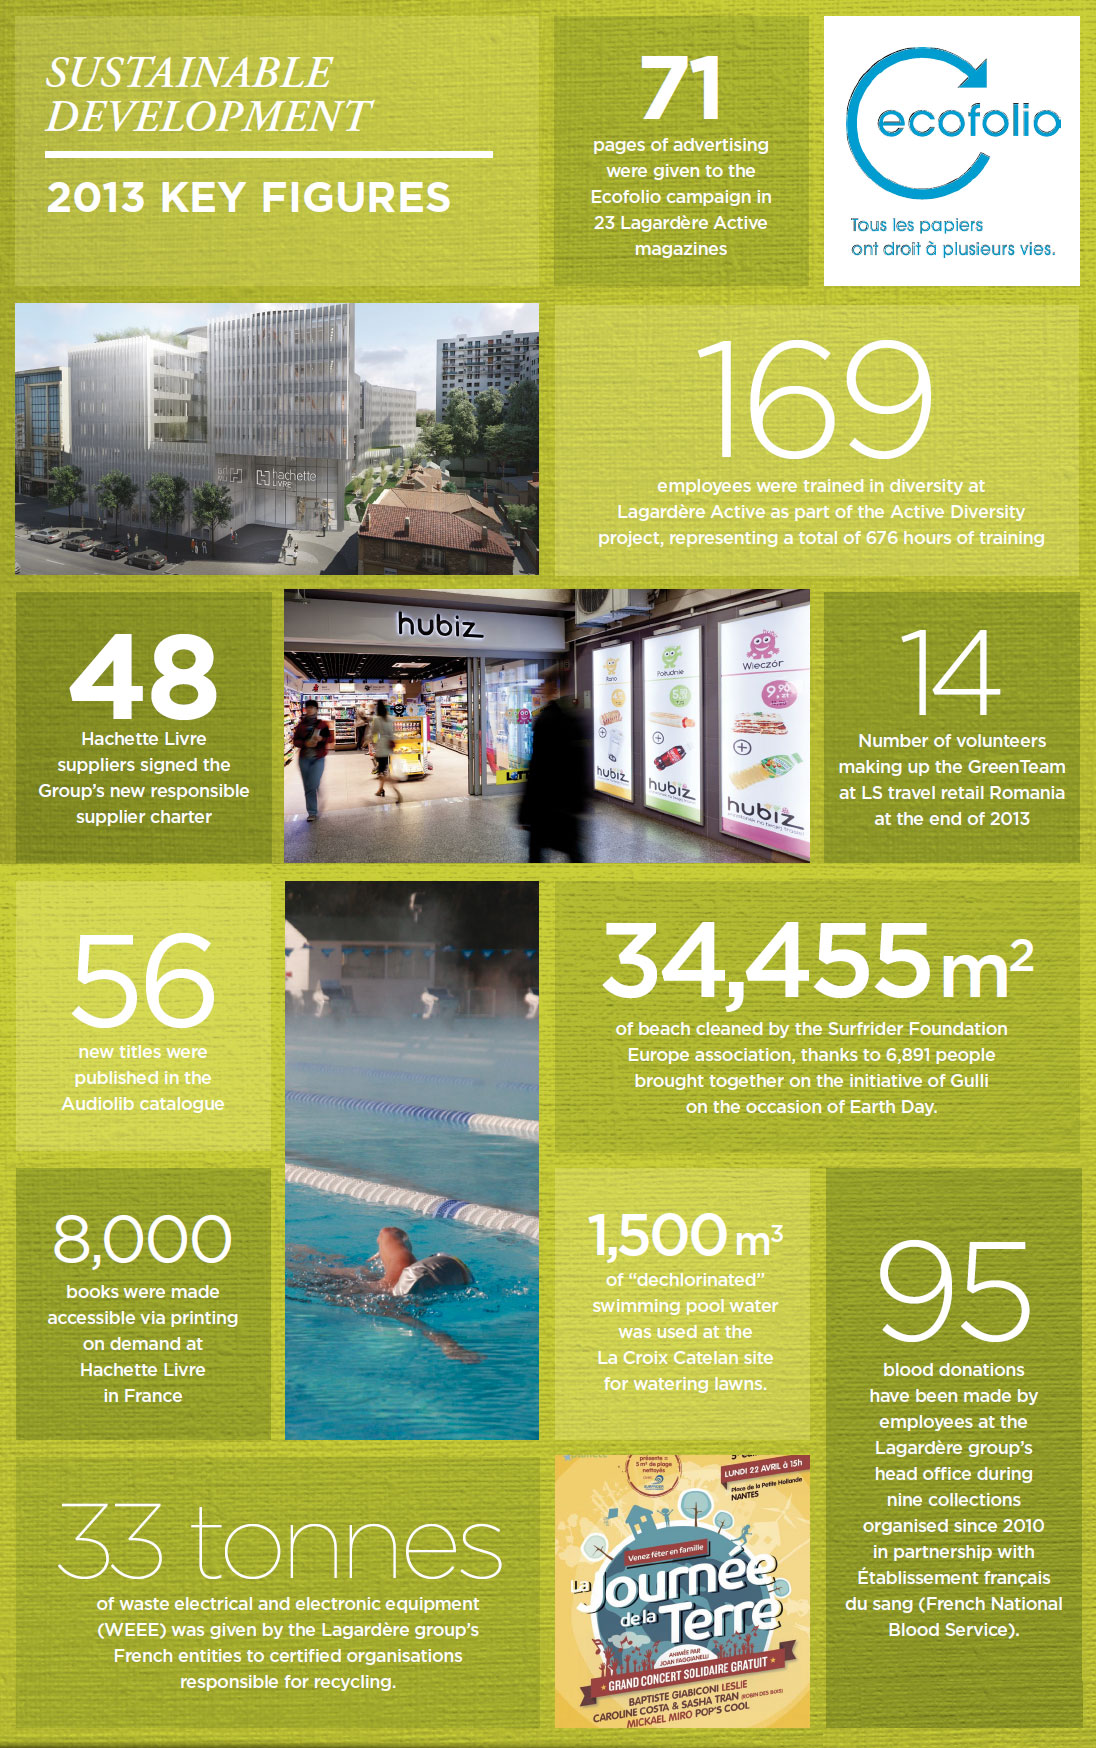 SUSTAINABLE DEVELOPMENT - 2013 KEY FIGURES